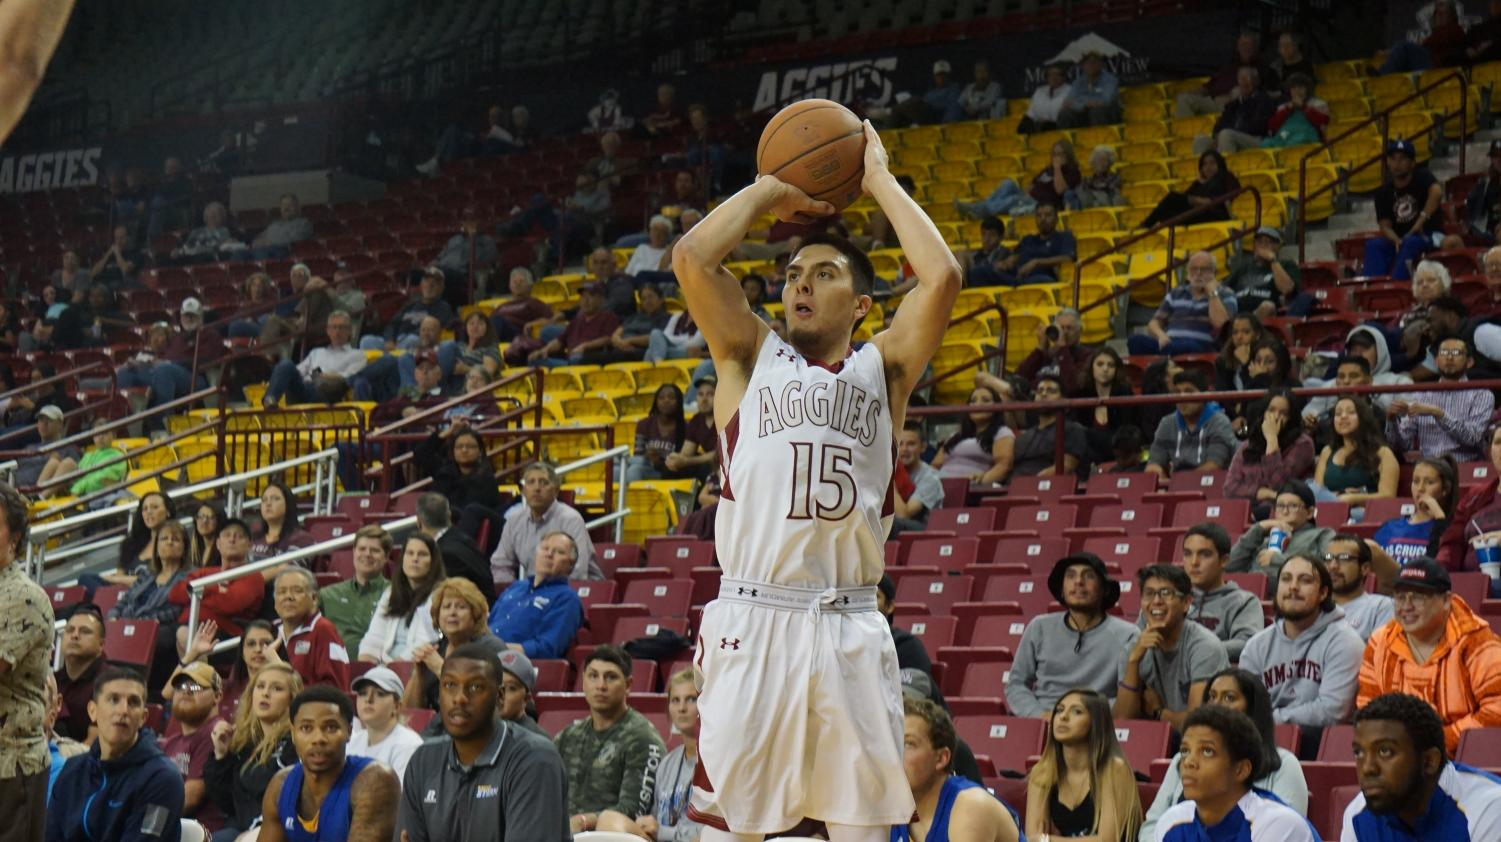 Senior guard Joe Garza goes up for a shot during Wednesday night's exhibition game. NMSU won 90-83.